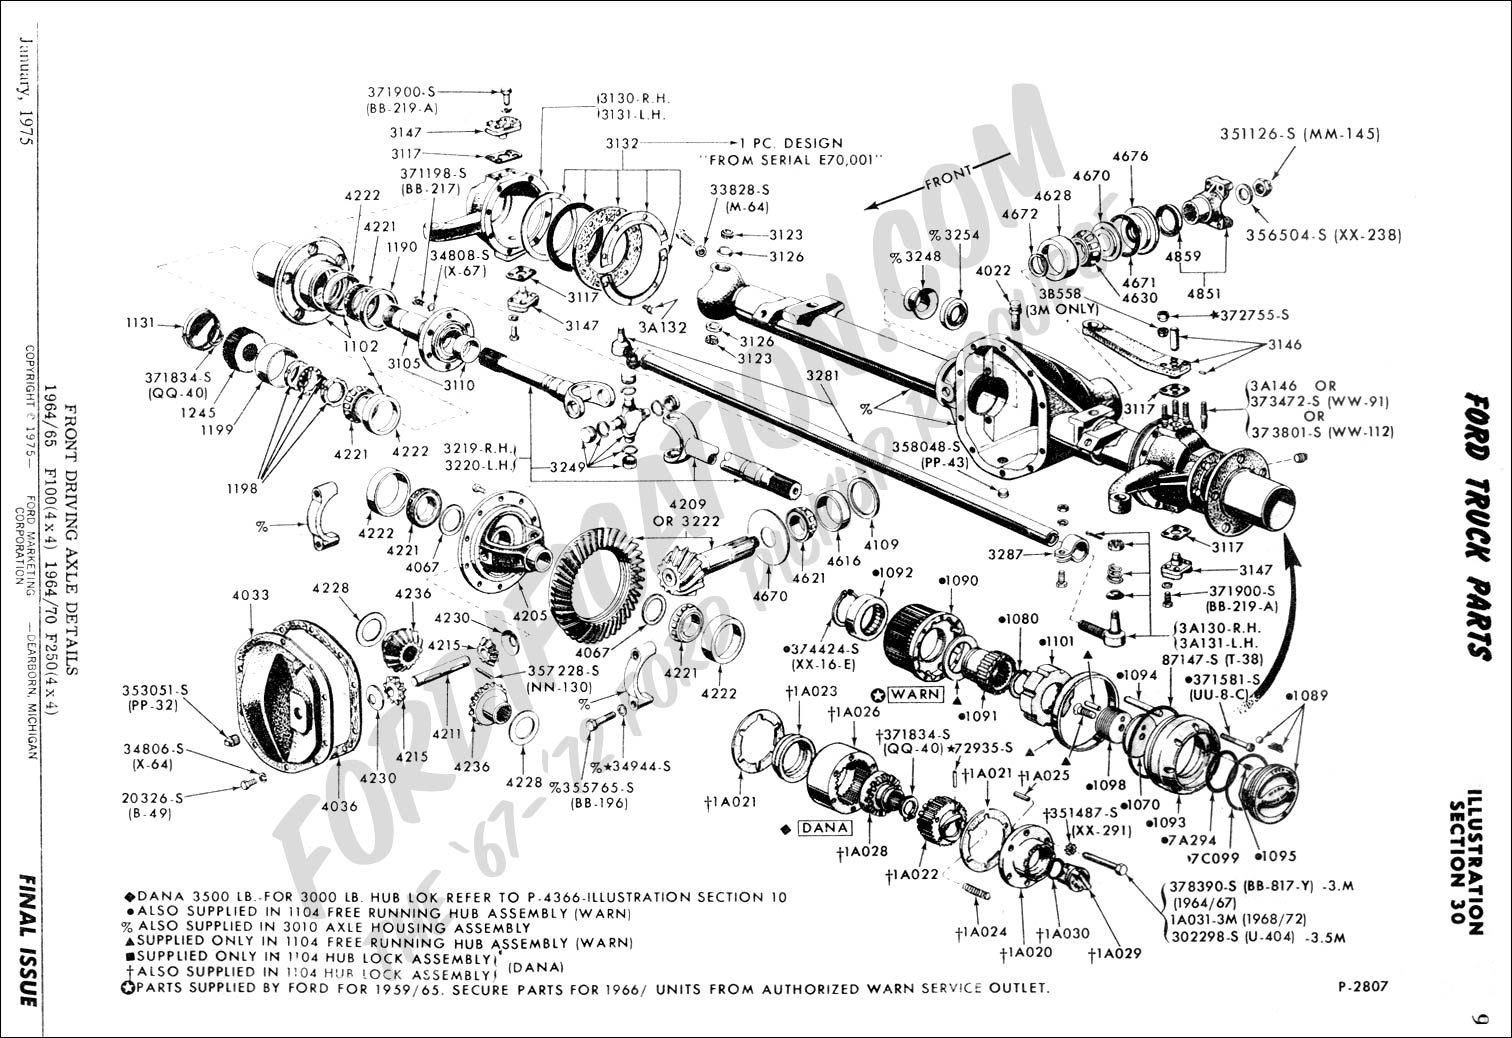 Ford Truck Technical Drawings and Schematics - Section A - Front/Rear Axle Assemblies and